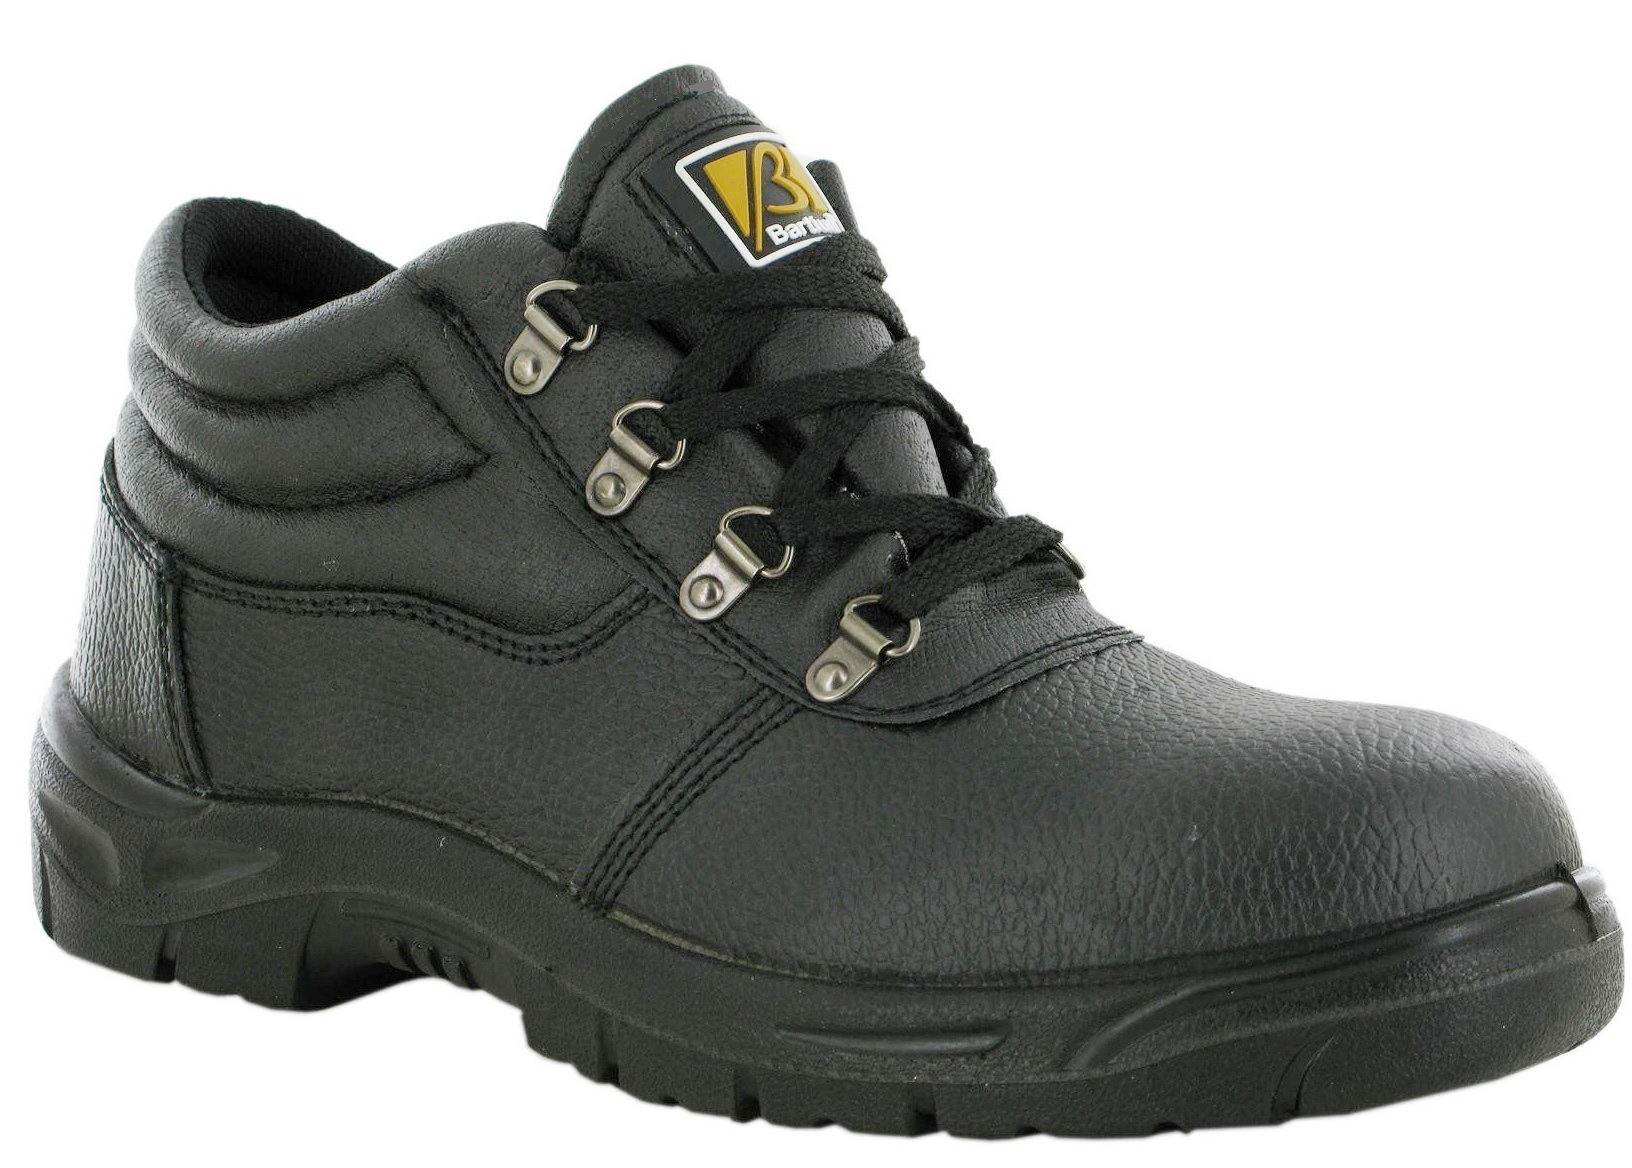 BREATHABLE LEATHER BLACK CHUKKA SAFETY STEEL TOE WORK LACE BOOT TRAINER MIDSOLE